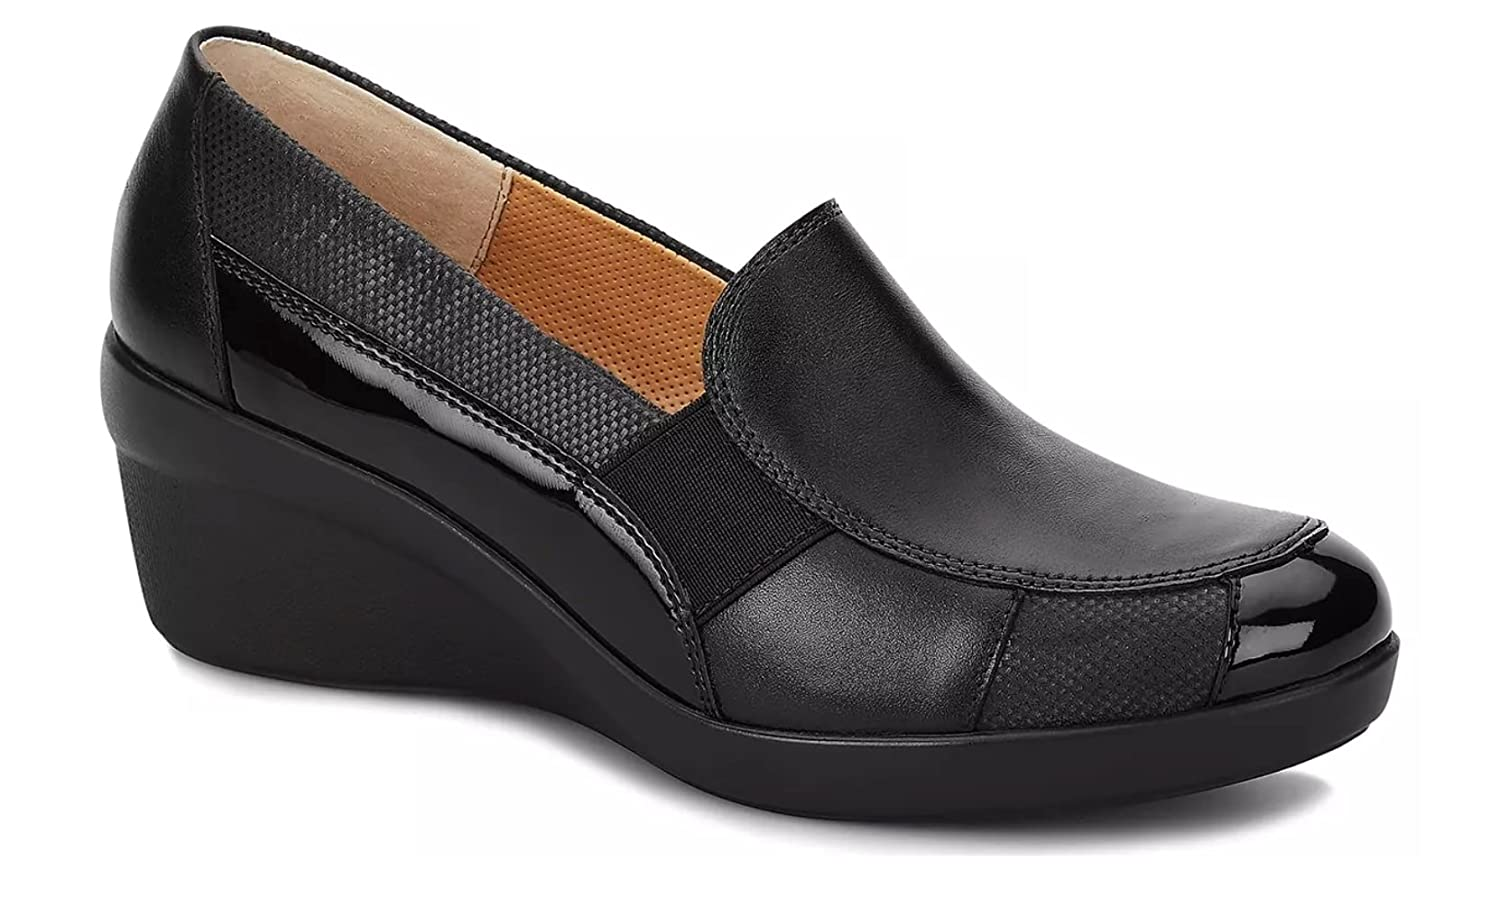 Andrea Shoes Comfort Women's Genuine Textured Leather Mid Wedge B077J98YXB 10 B(M) US|Black